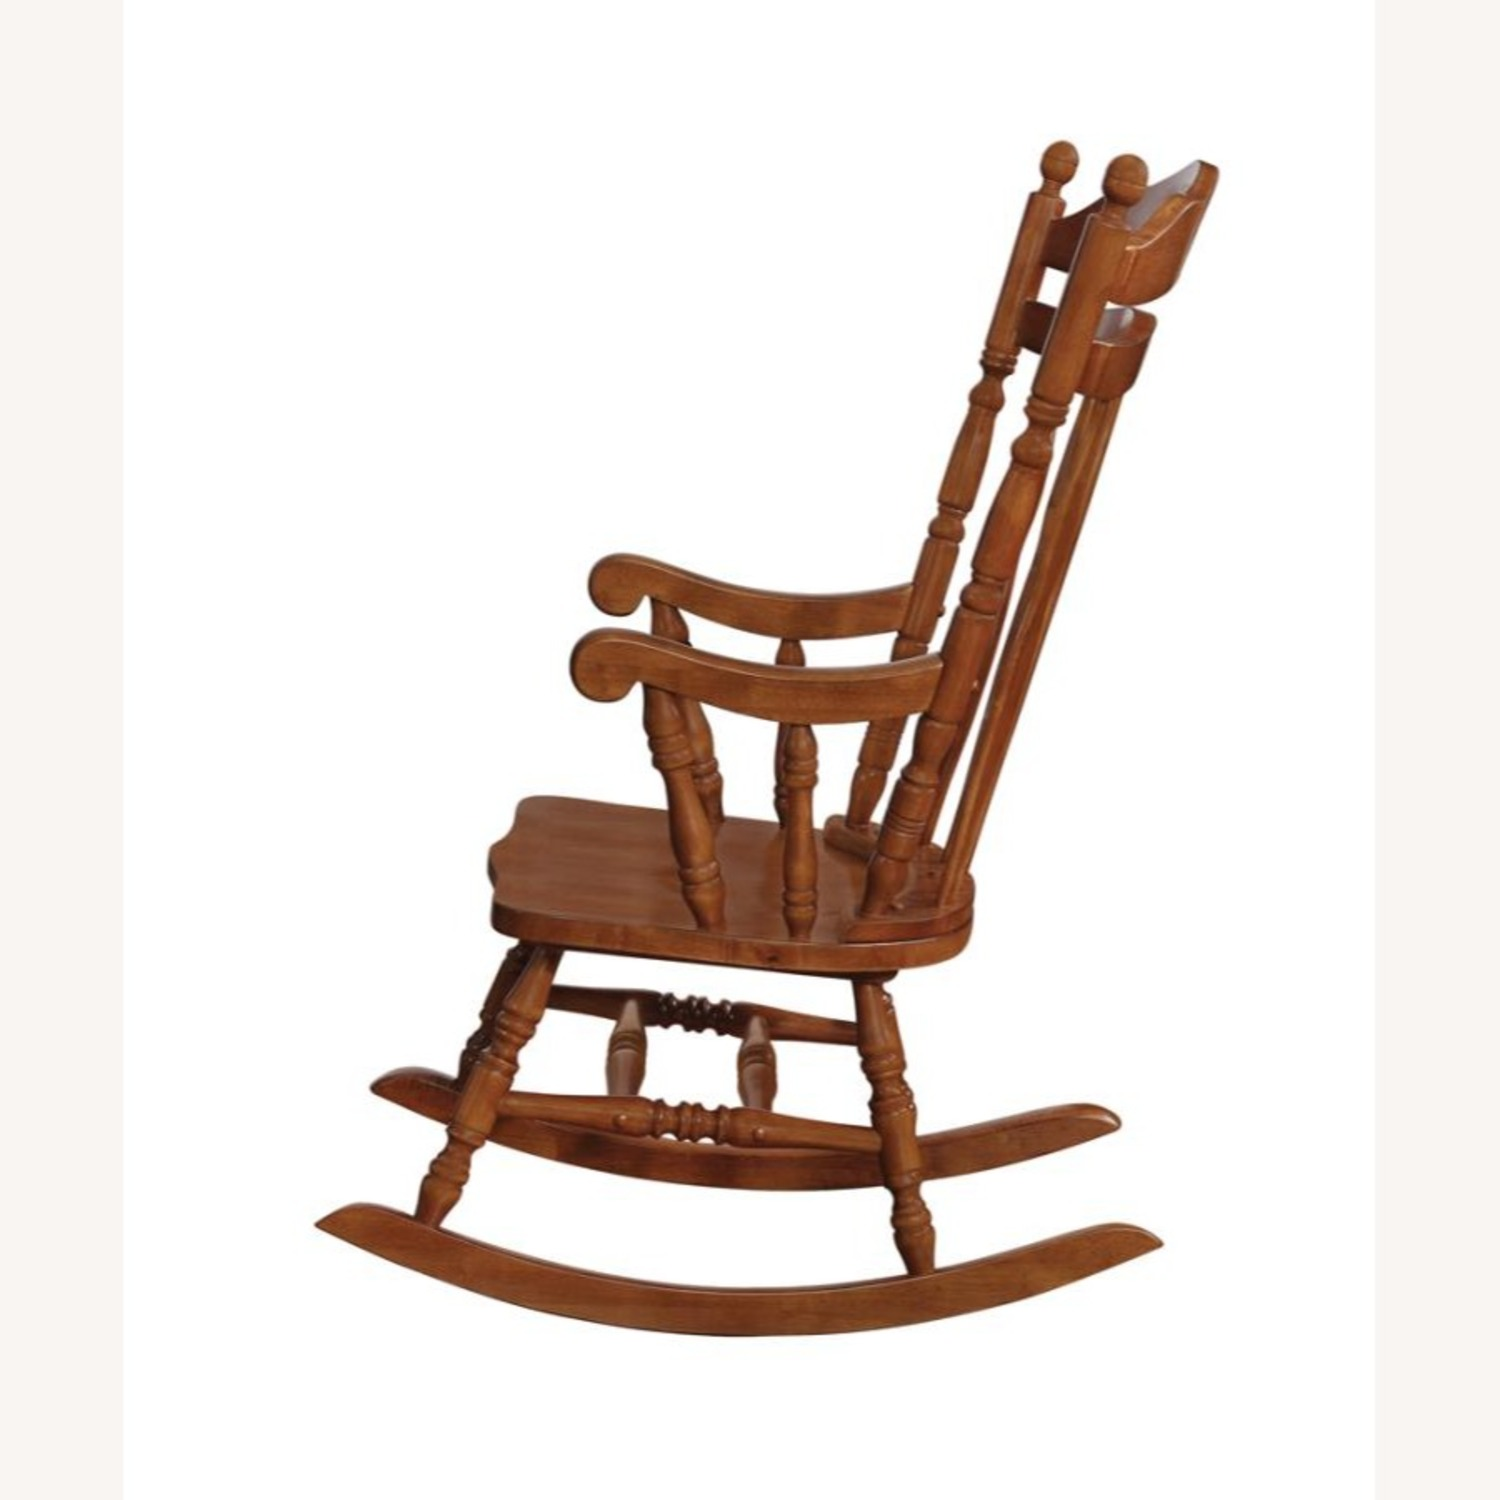 Rocking Chair In Medium Brown Rubberwood Finish - image-1